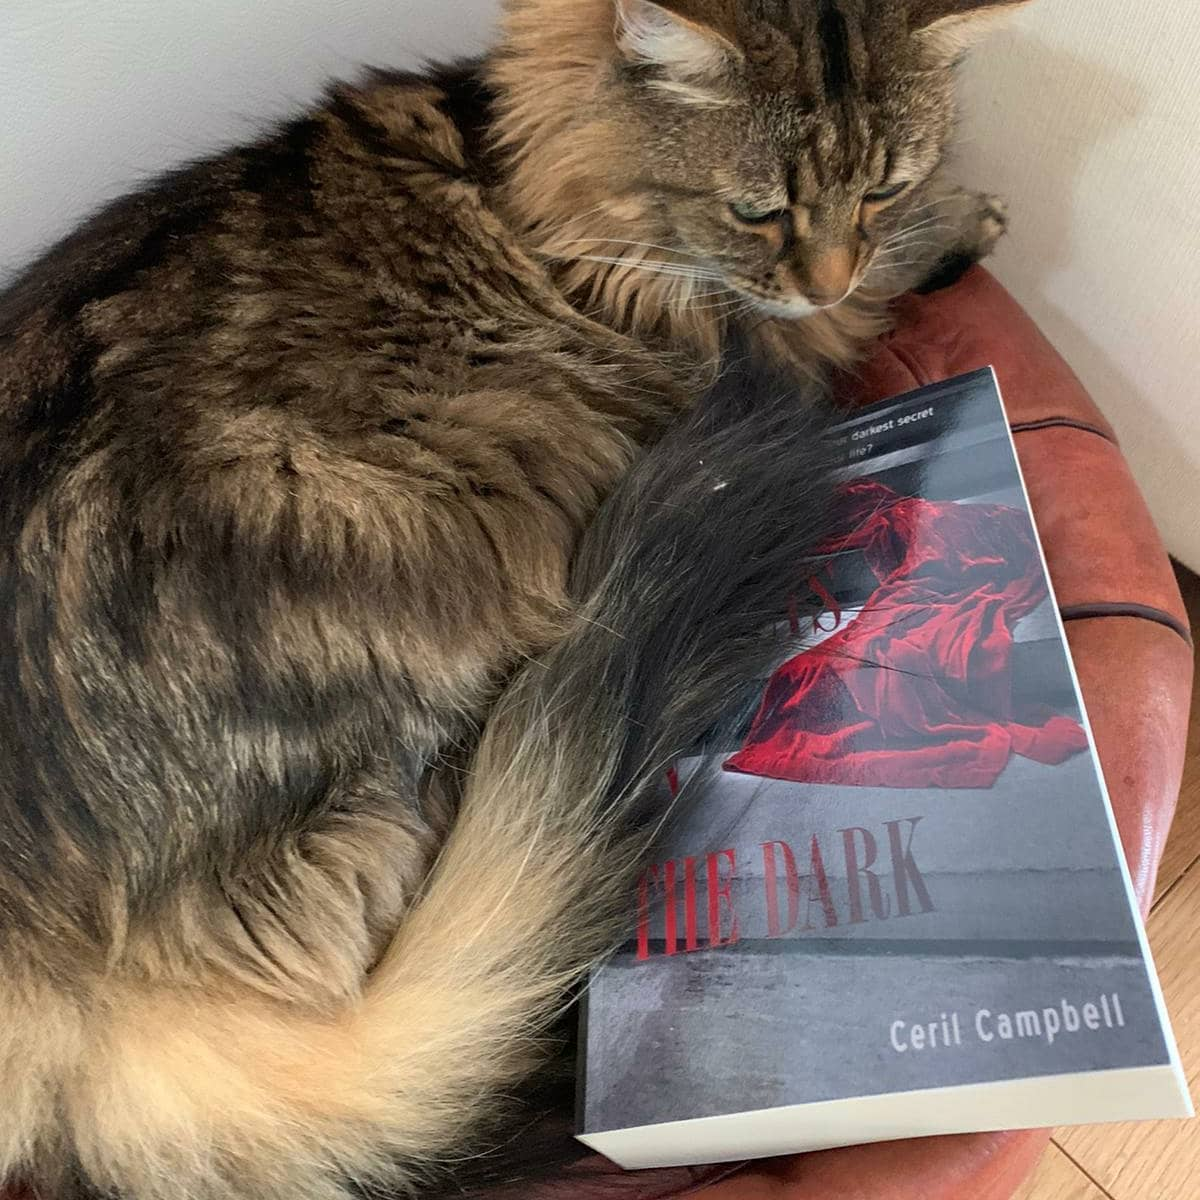 My debut novel 'Secrets in the Dark' has just been bagsied to read by Luna the cat before her human even started to read it.    The book is just published and available on Amazon as a Kindle or paperback.  I hope you will enjoy it as much as Luna and if so - I will be thrilled if you can spread the word on Amazon rated reviews and any social media.  Synopsis: The Kings Road, Chelsea in 1970's London is the epicentre for fashion, music and unlikely friendships - where it's now cool for posh, privileged girls to mix outside their social circles. When two such teenagers meet and form a close and sisterly bond, their worlds are unexpectedly and suddenly torn apart as they each suffer personal traumas. Needing to escape London to hide their shameful secrets, they embark upon individual rollercoaster journeys of extreme highs and lows that take them to Paris, Los Angeles and the South of France, where men are rich, sex is a commodity, drugs are a way of life and a glamorous celebrity lifestyle is optional.   'A gripping page-turner that I just couldn't put down.'  'Ceril's vivid descriptions of life on and around the Kings Road Chelsea in the '70s transported me back in time.  'Absolutely immersed myself into this book, the twist at the end took me utterly by surprise.'    #1970's